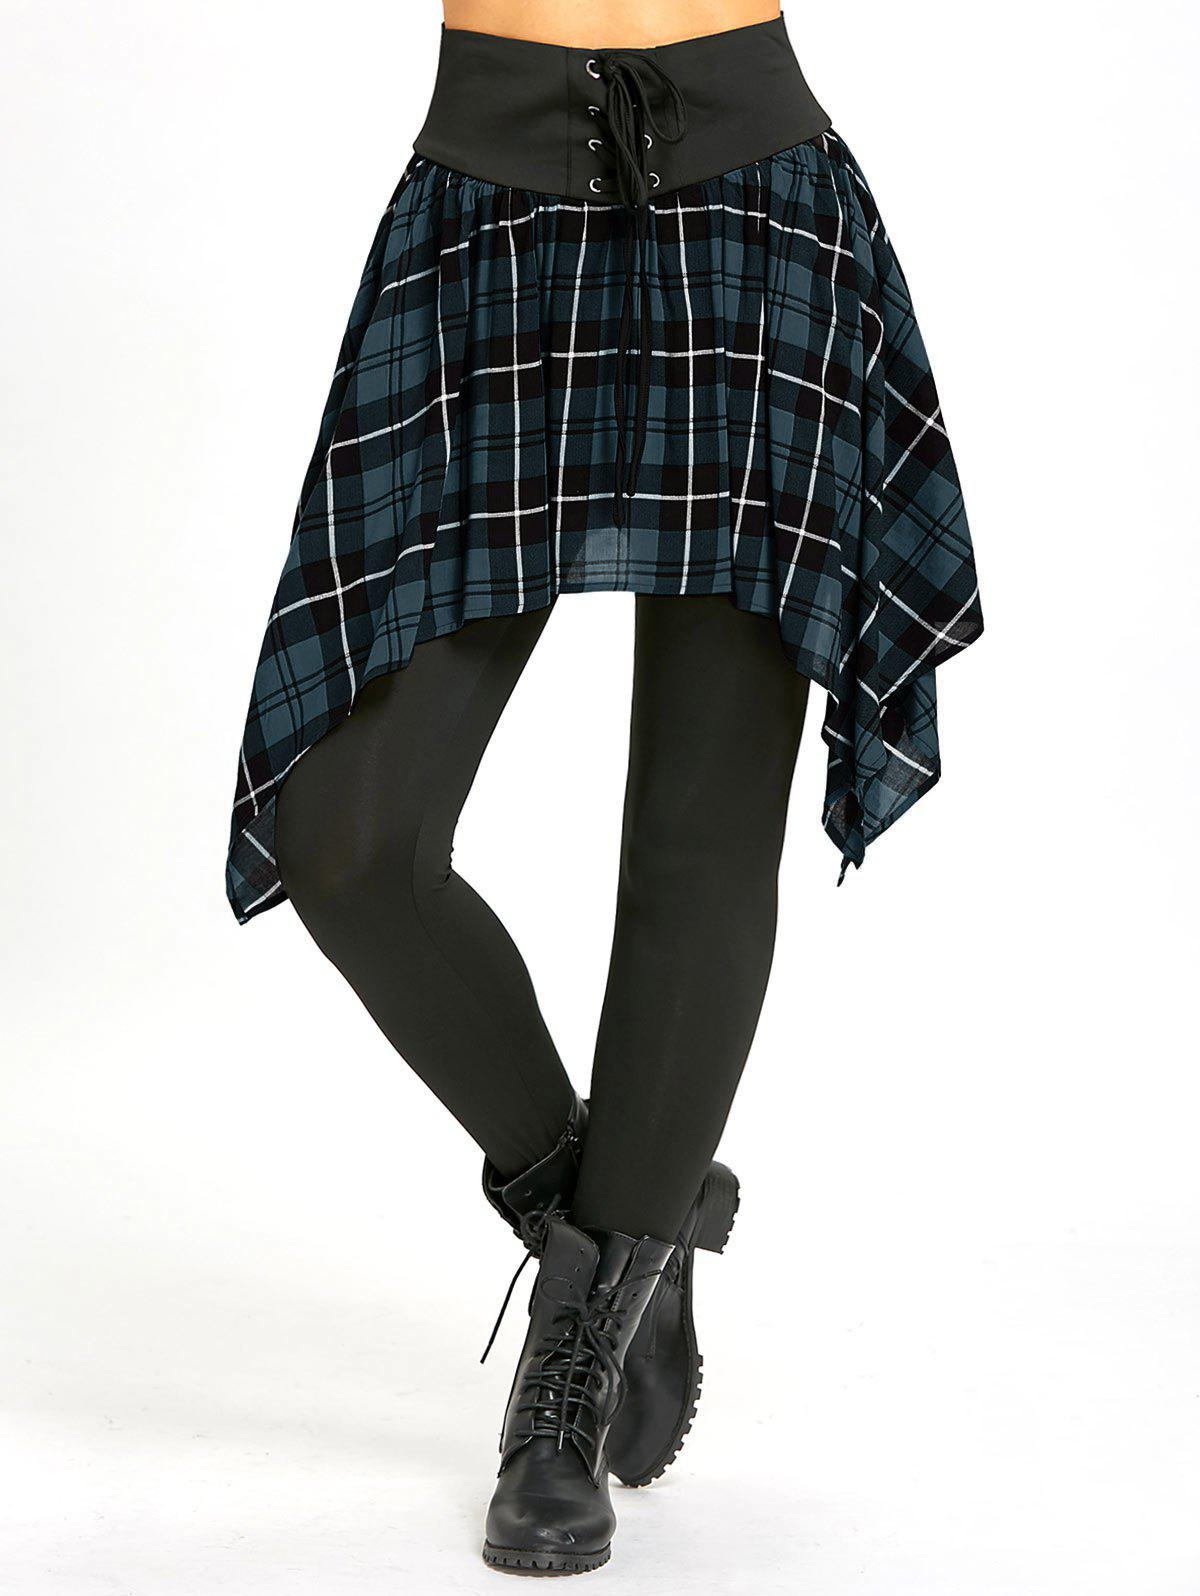 f4b6a5d4 49% OFF ] 2019 Lace Up Asymmetric Plaid Skirted Leggings | Rosegal.com